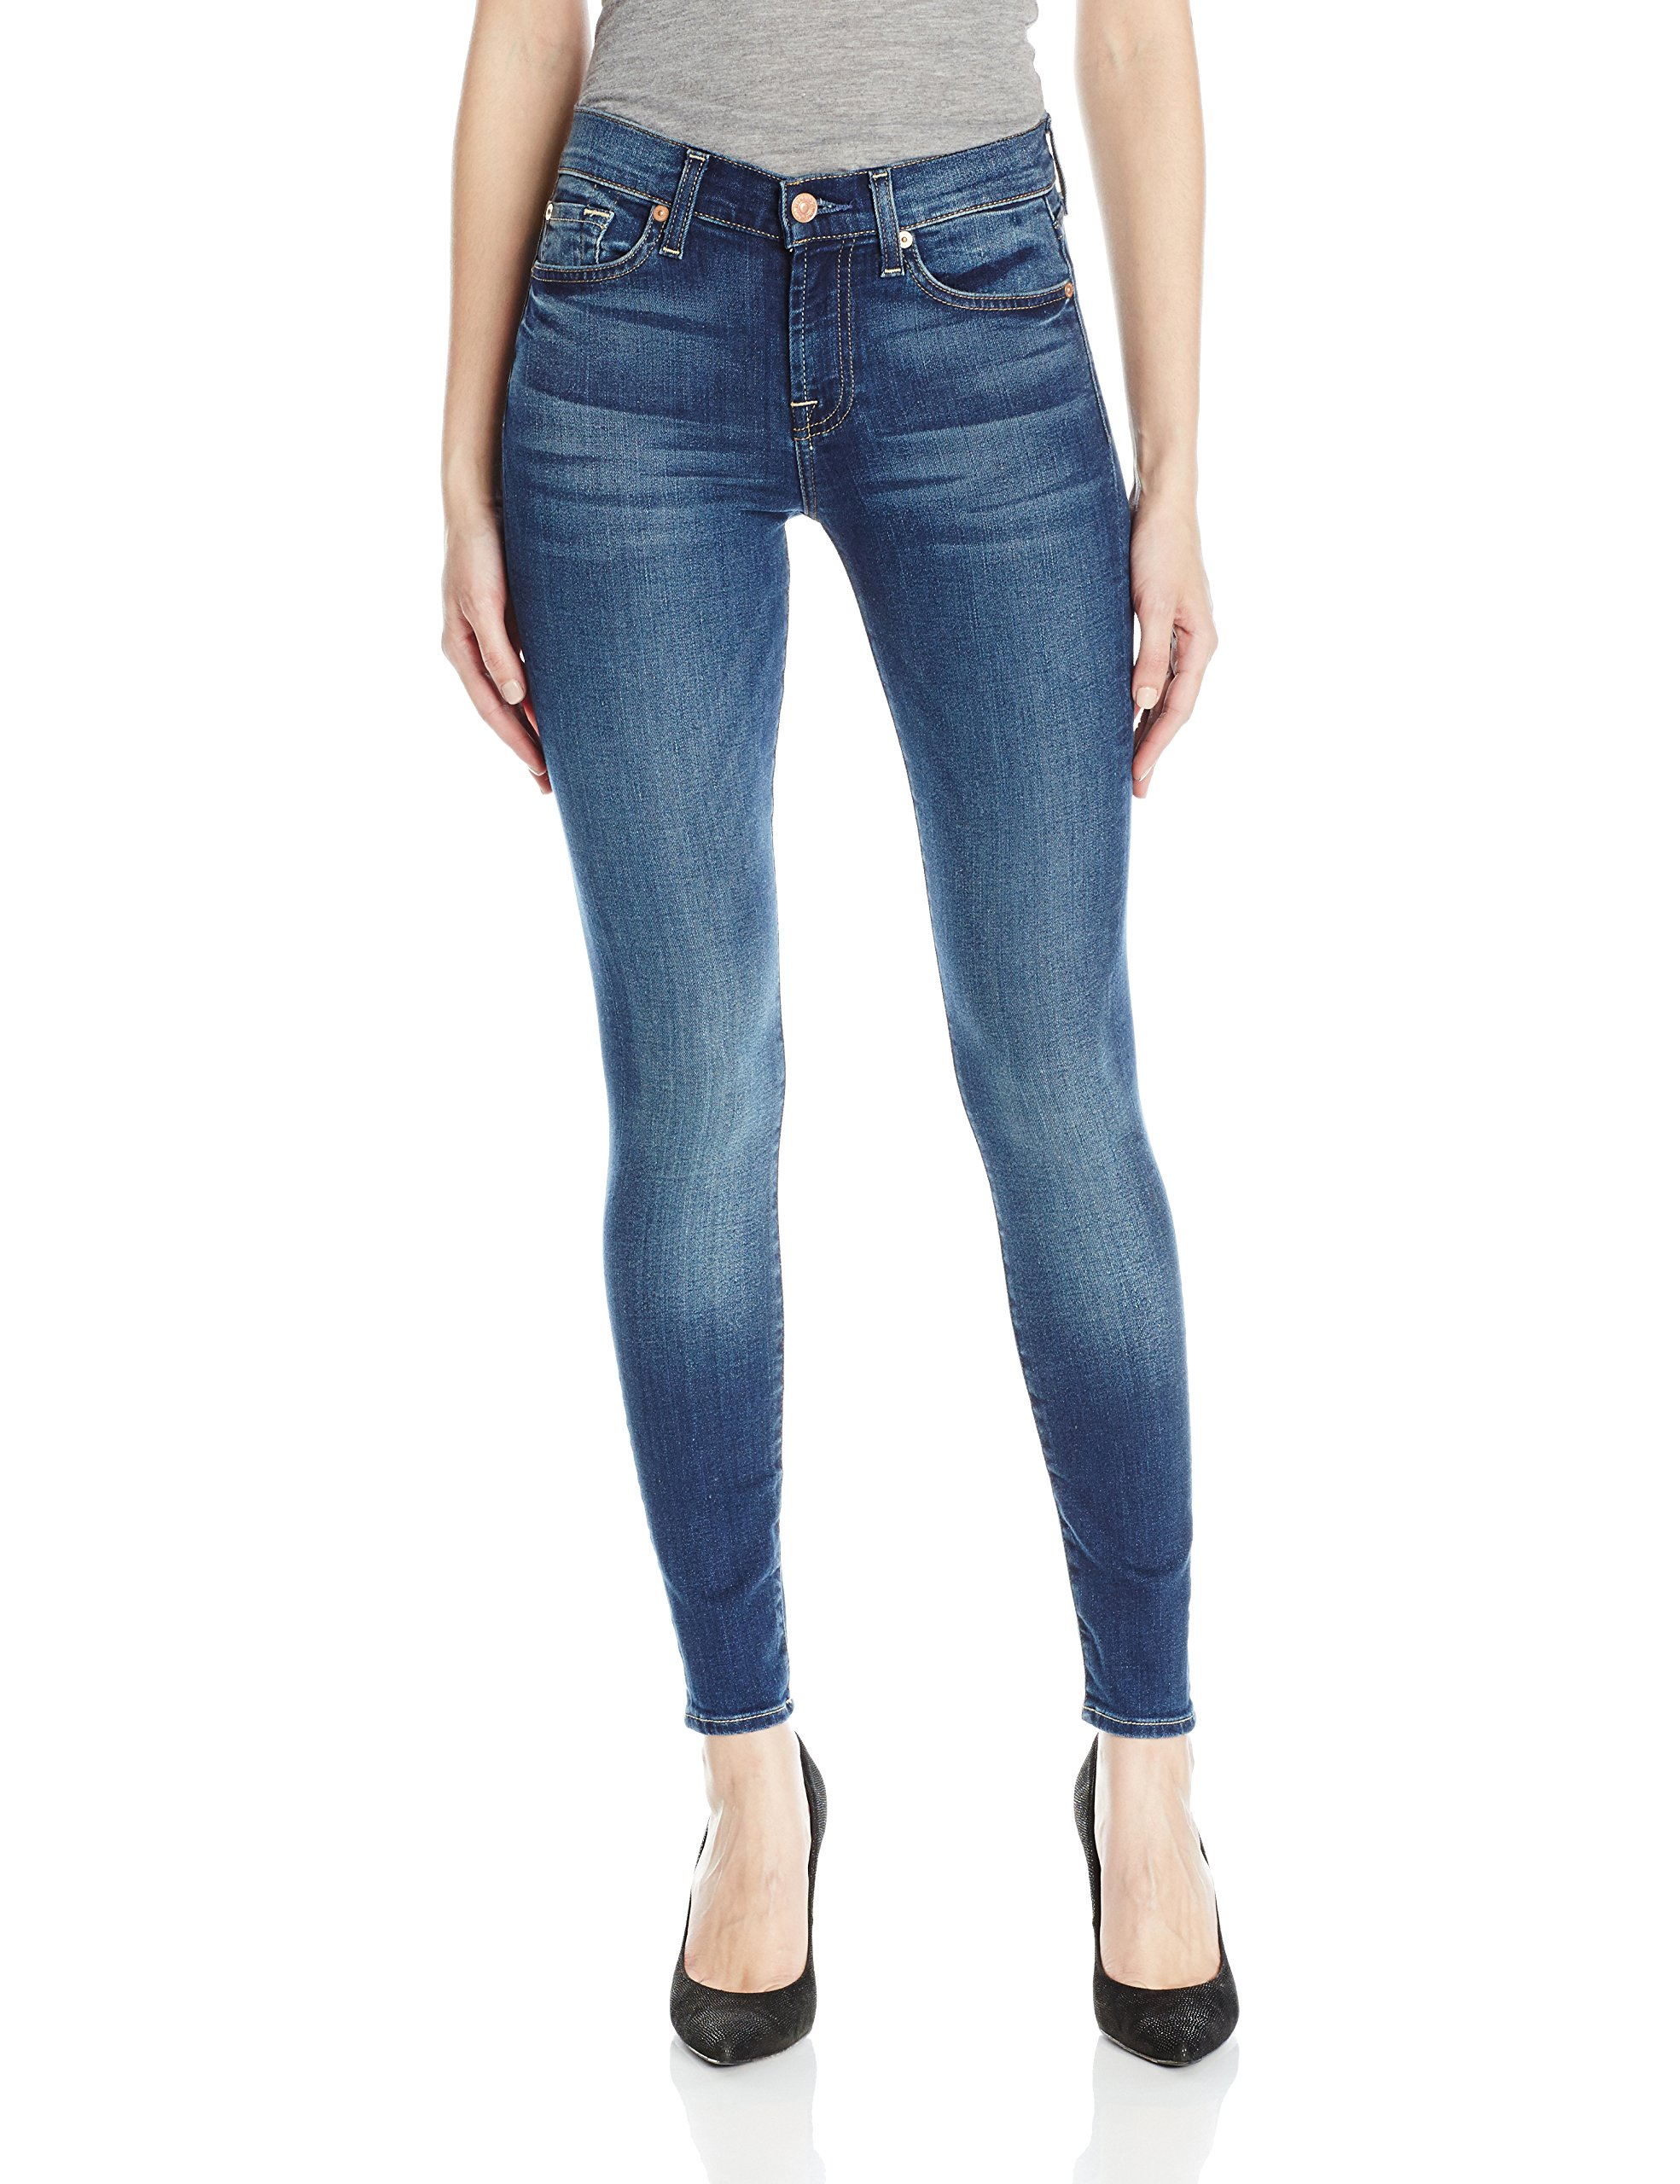 7 For All Mankind Women's The Skinny Jean, Rich Coastal Blue, 28